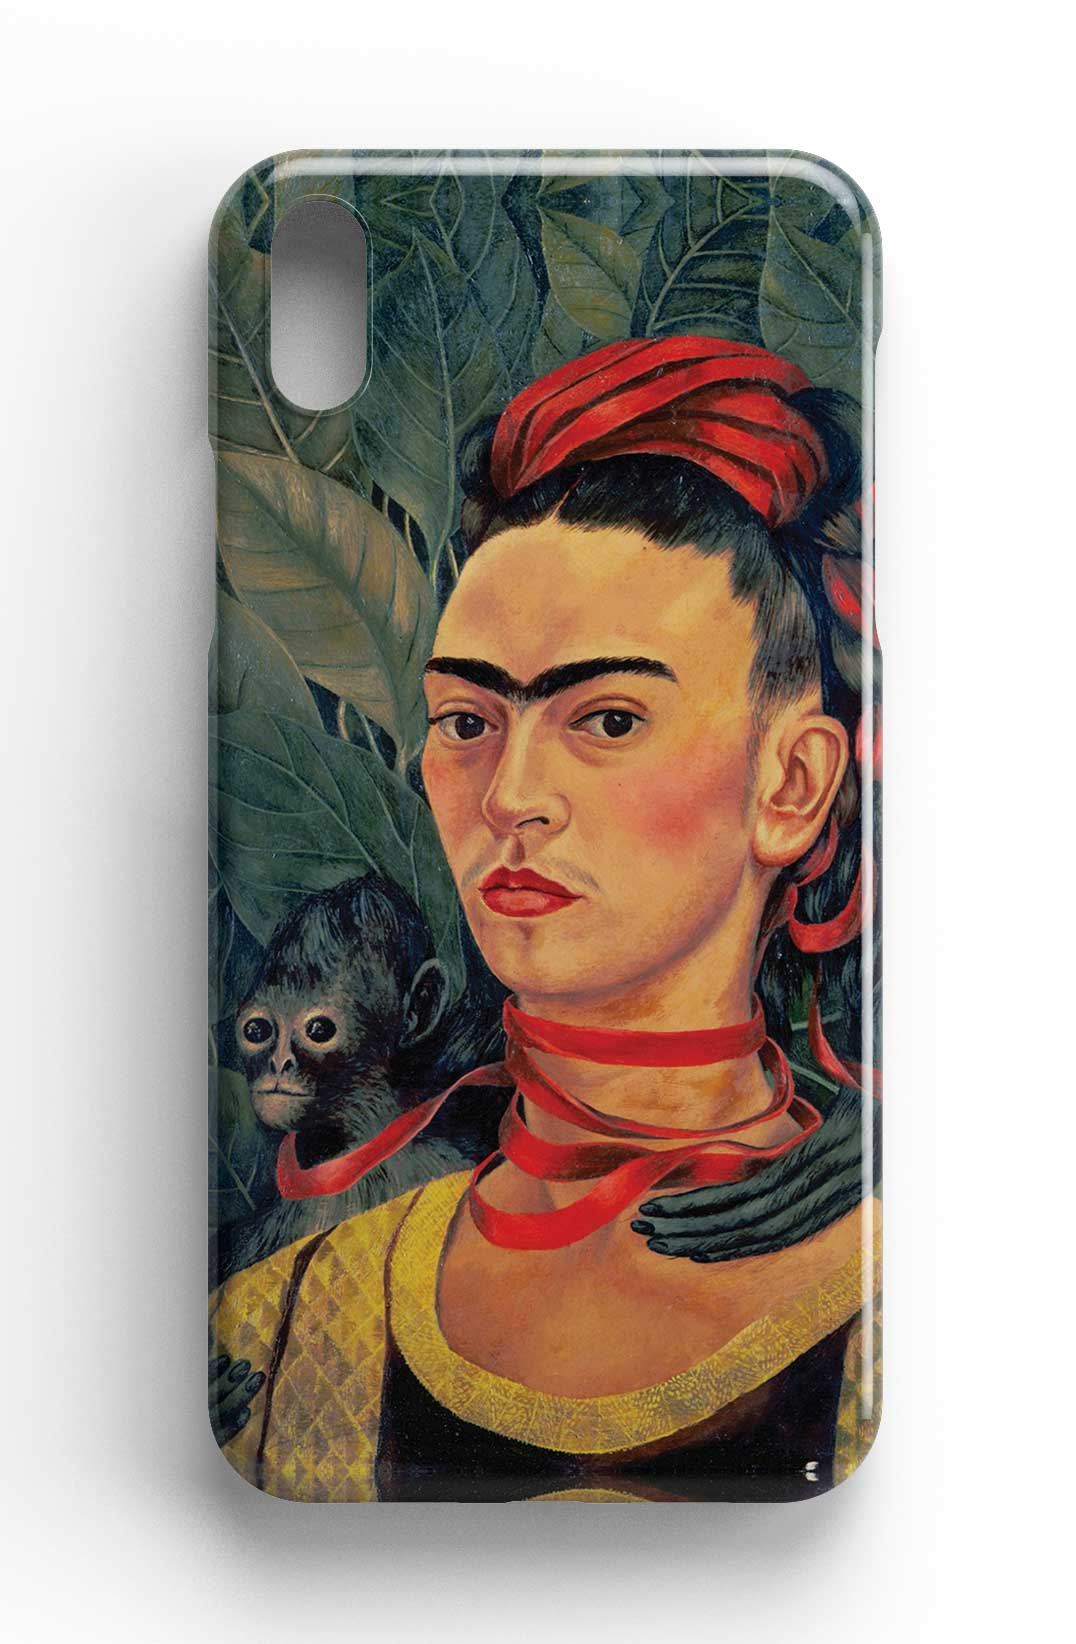 Frida Kahlo 'Self Portrait with Monkey' Phone case